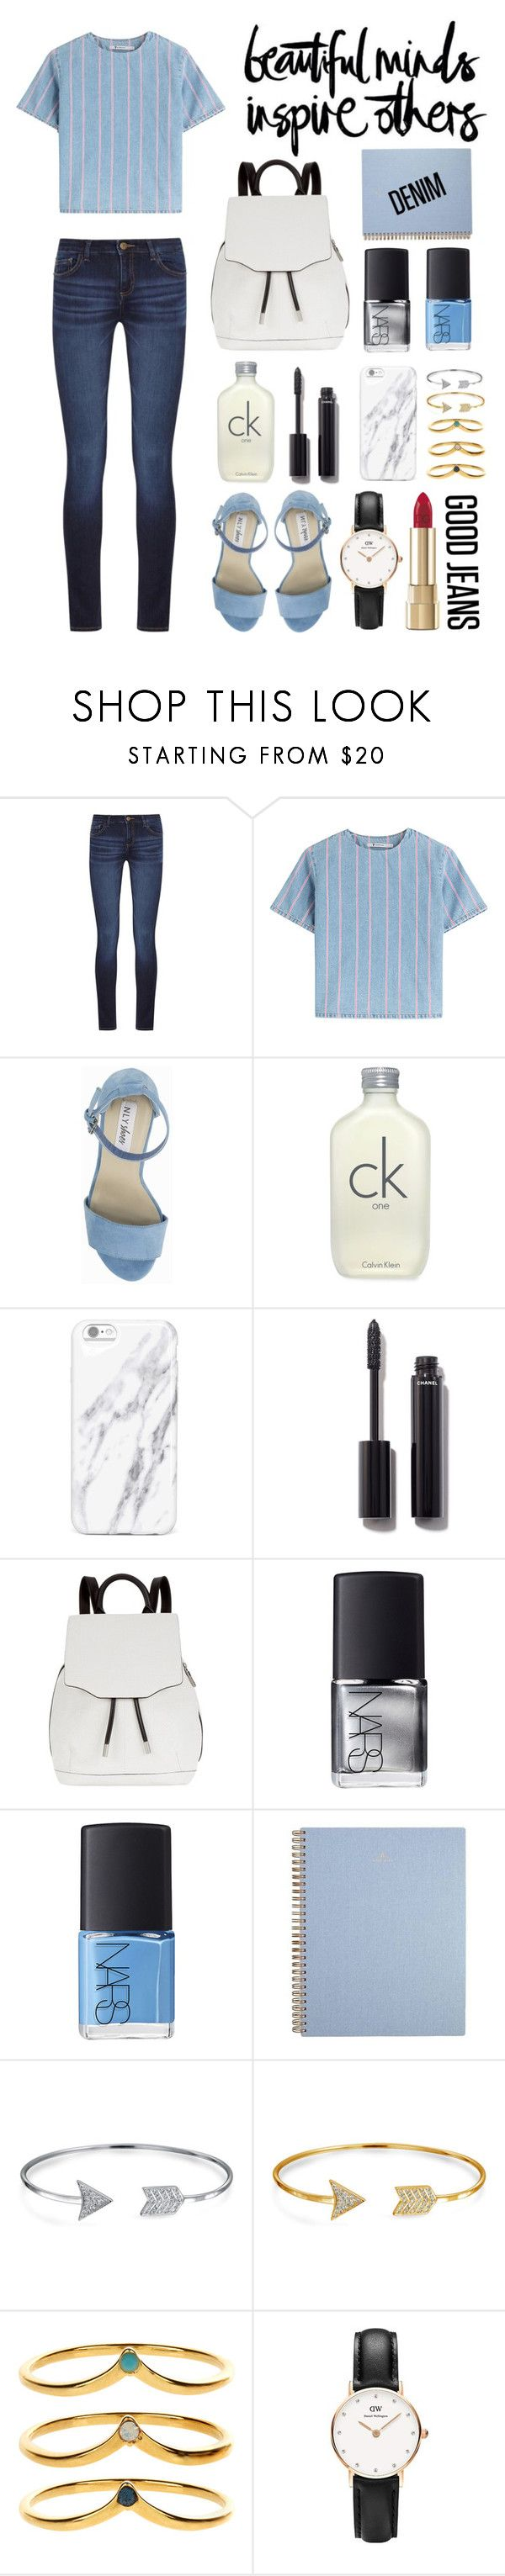 """""""Double Down on Denim"""" by kiki11301 ❤ liked on Polyvore featuring DL1961 Premium Denim, T By Alexander Wang, Nly Shoes, Calvin Klein, Chanel, Butter London, rag & bone, NARS Cosmetics, Bling Jewelry and Accessorize"""